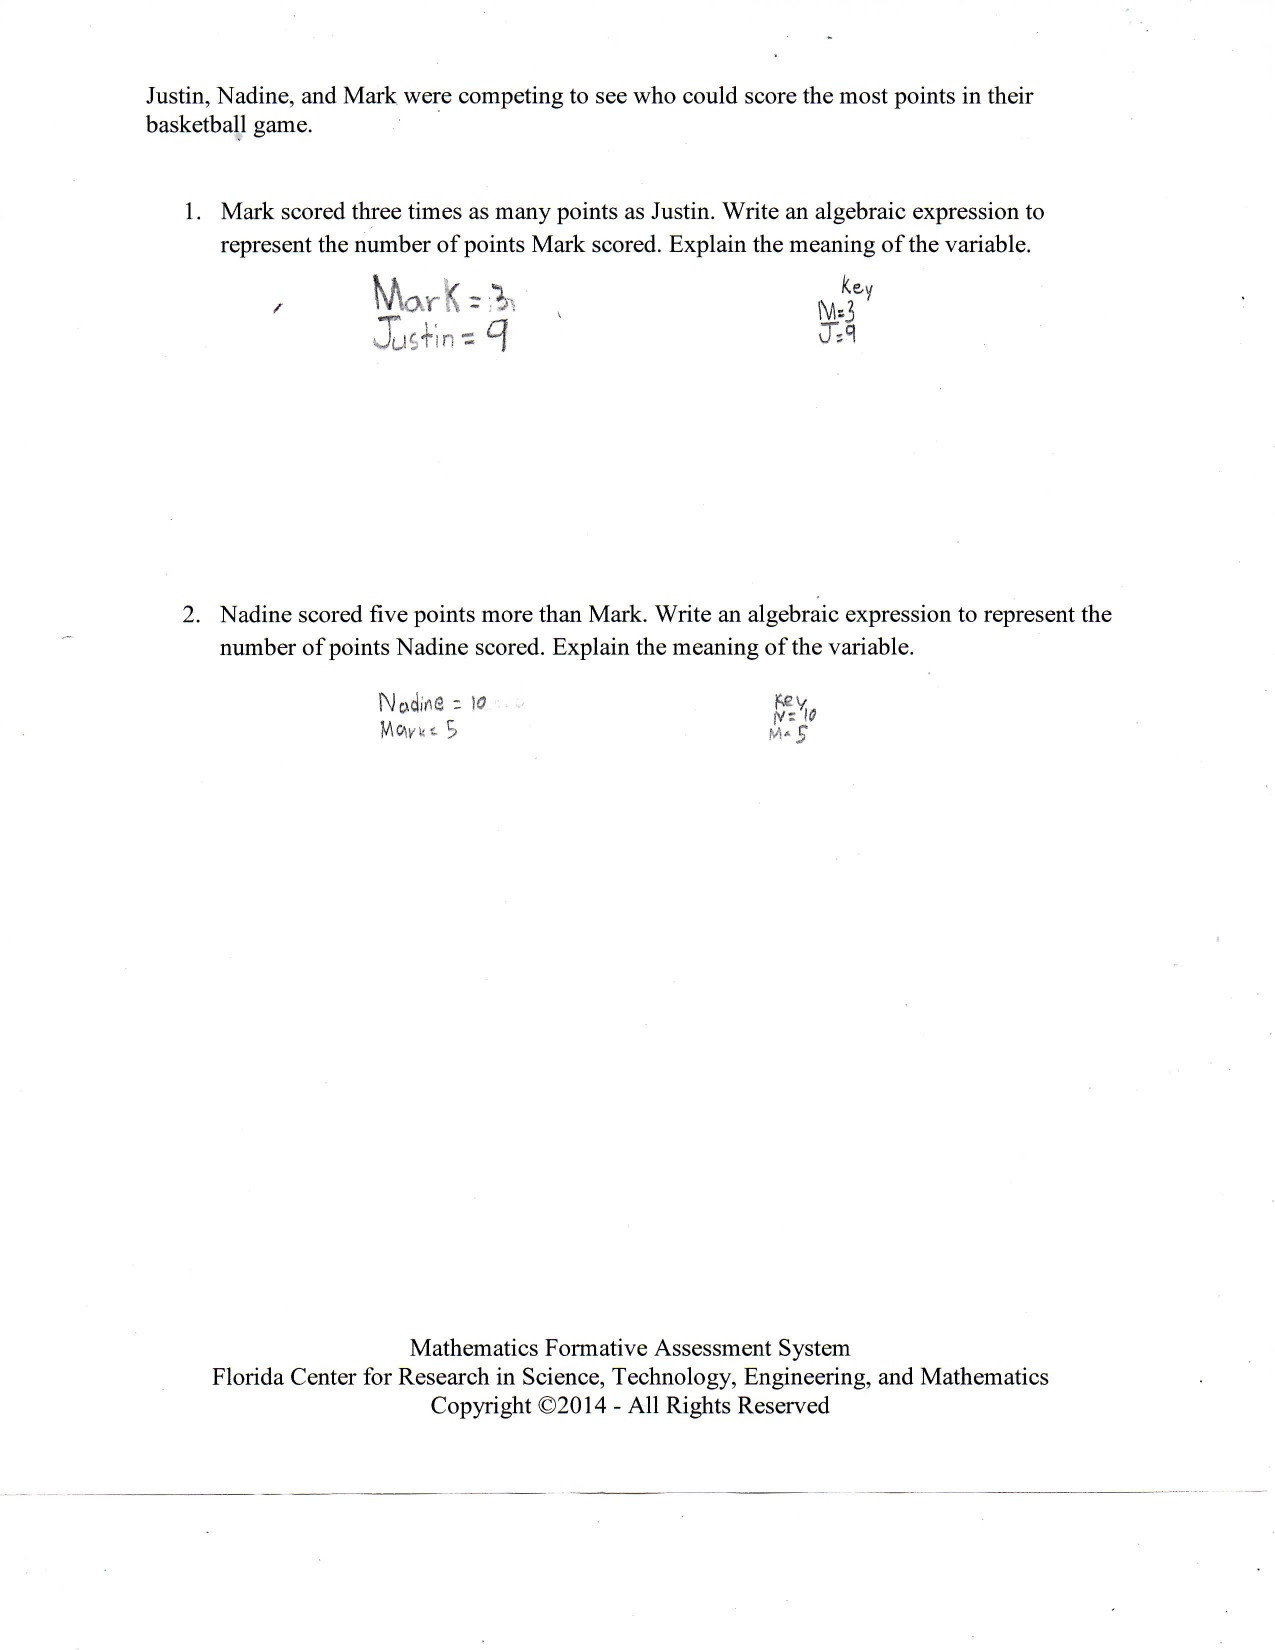 Writing and Evaluating Expressions Worksheet Interpreting Expressions Worksheet Answer Key